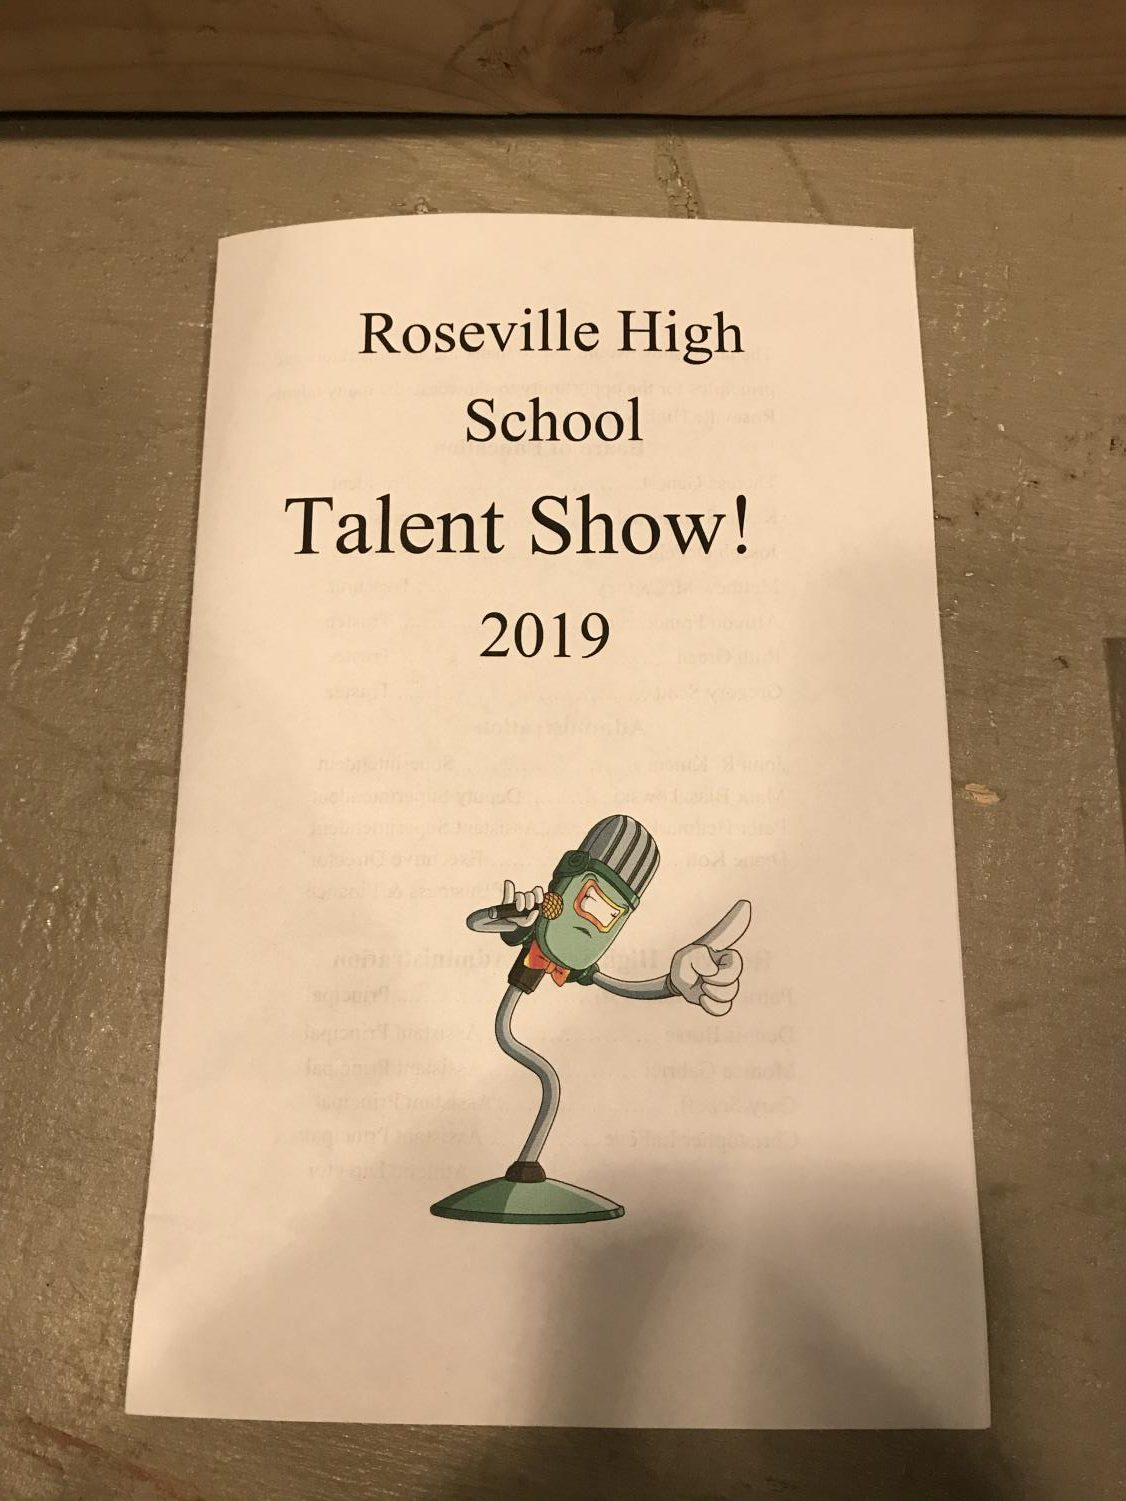 The programs that were handed out at the talent show.